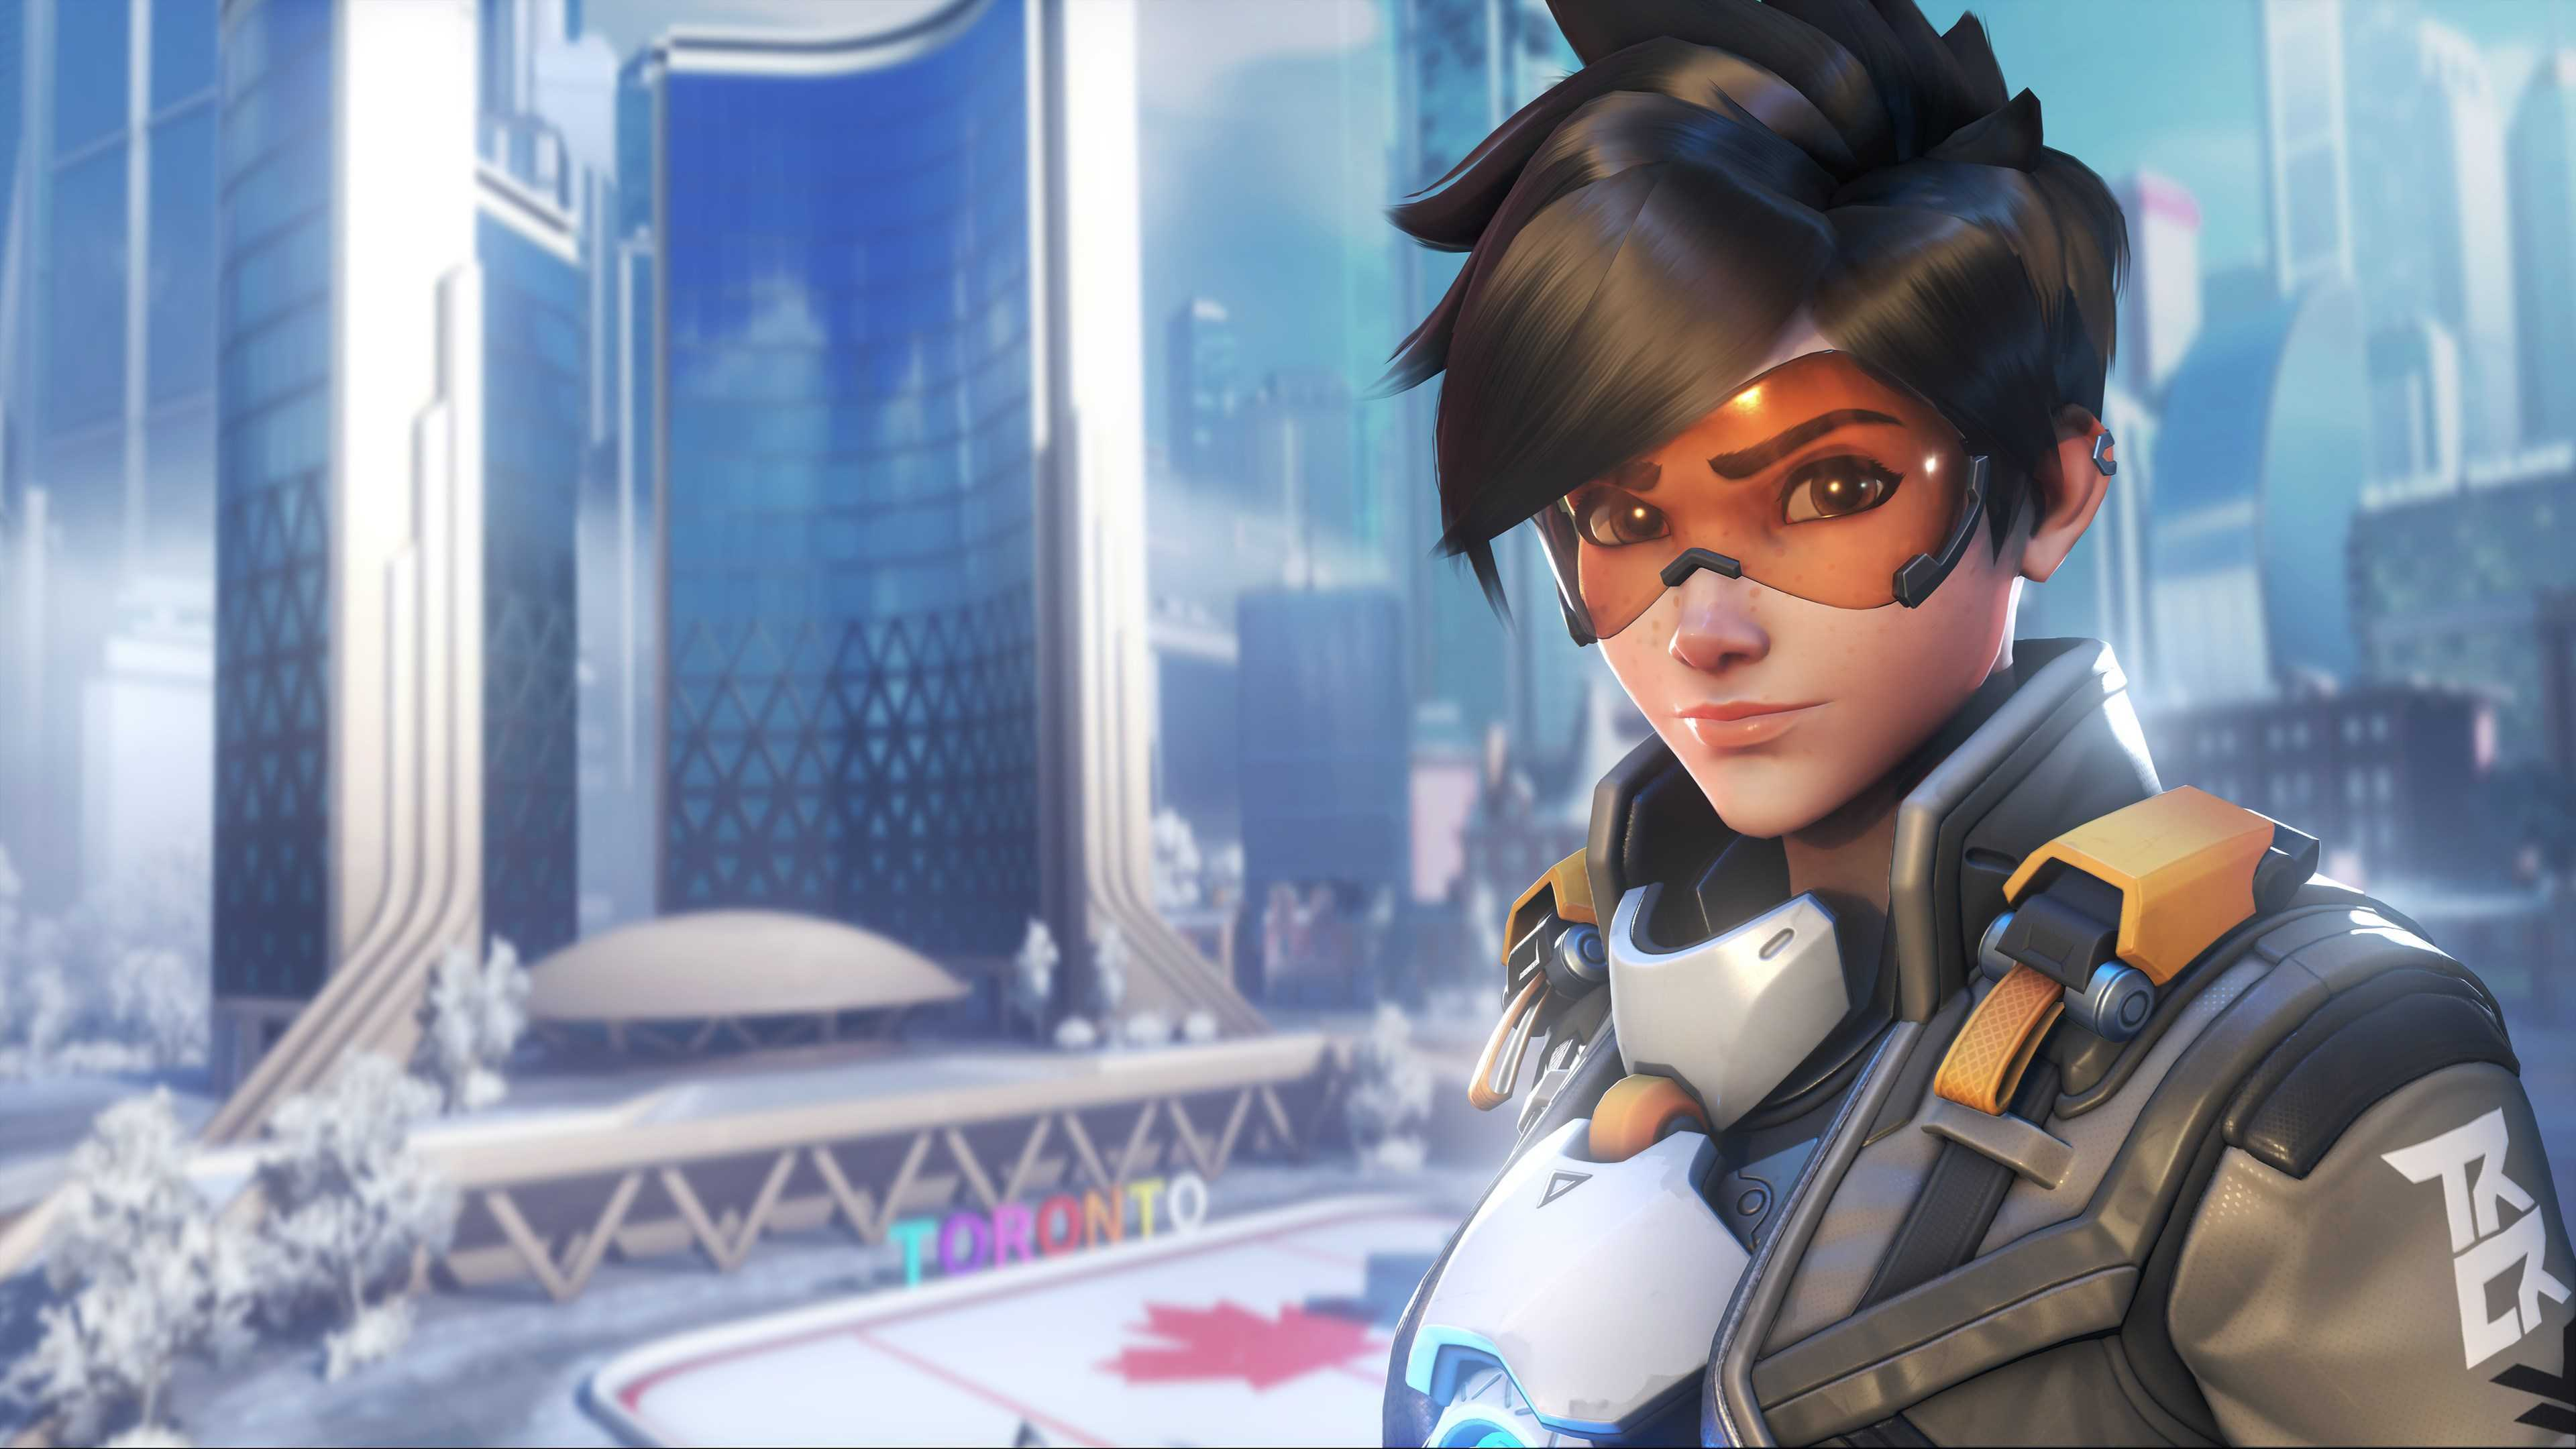 Overwatch Hd Wallpaper And Image Background